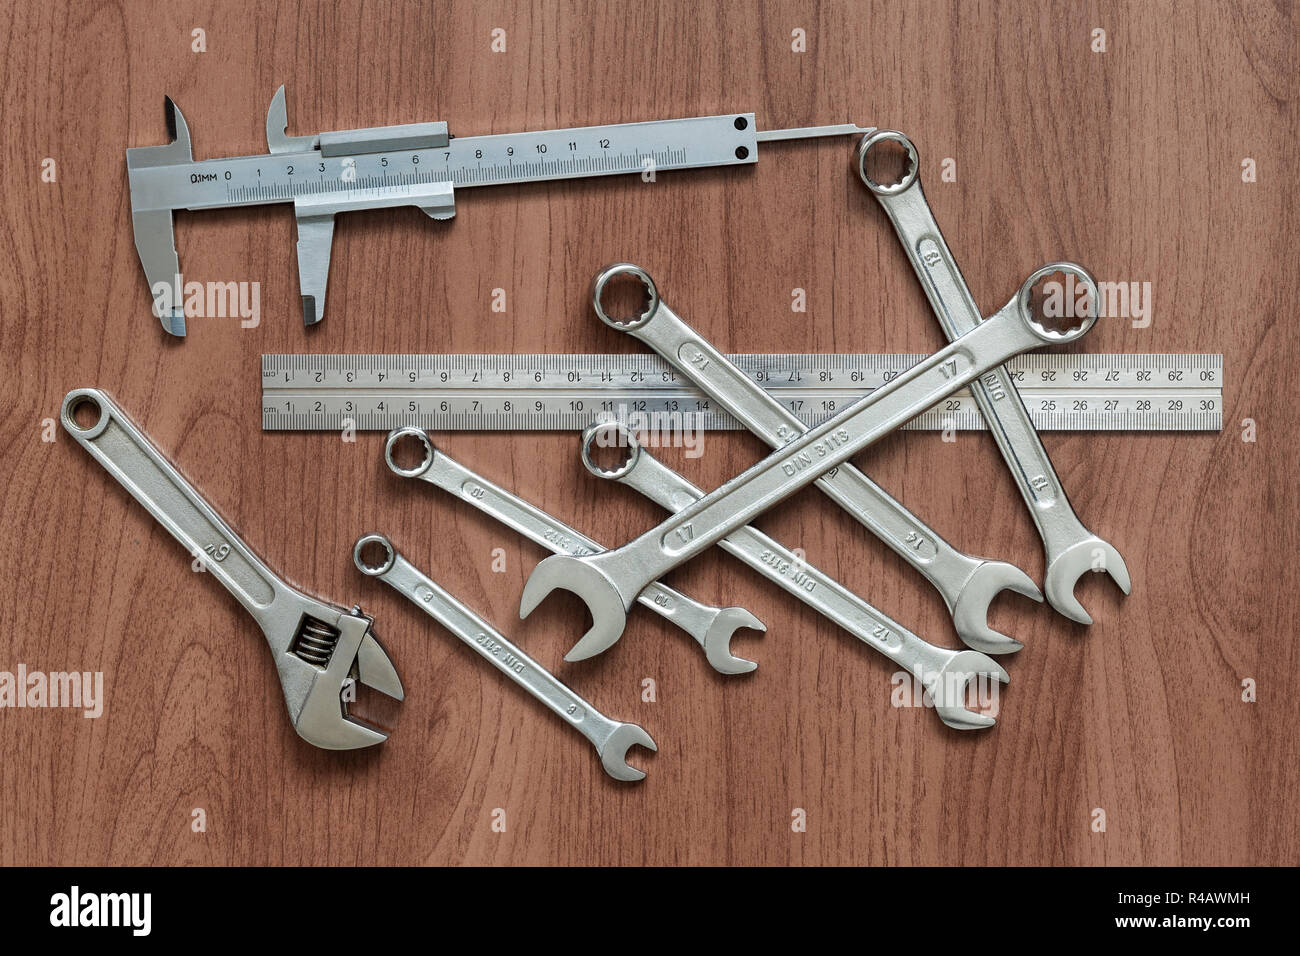 Set of wrenches, caliper, ruler and adjustable wrench on a wooden table. View from above - Stock Image